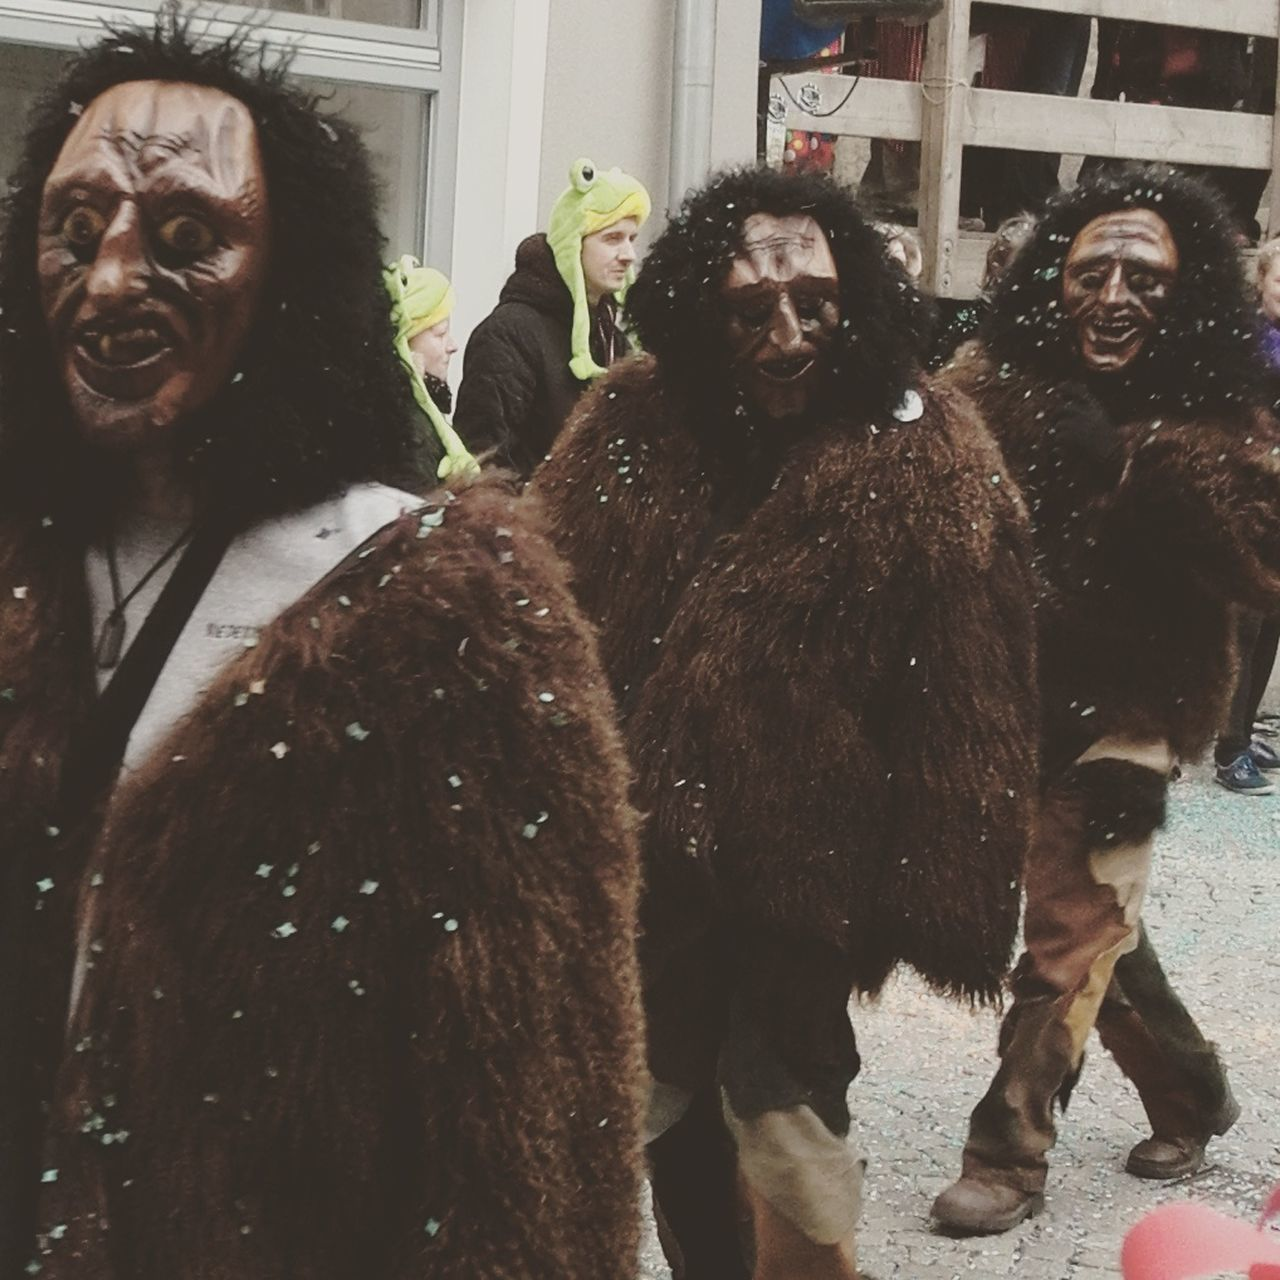 Adult Adults Only Carneval Colors Frightening Indoors  Mask Monster Night Only Men Parade Participant People Scary Traditional Zombie